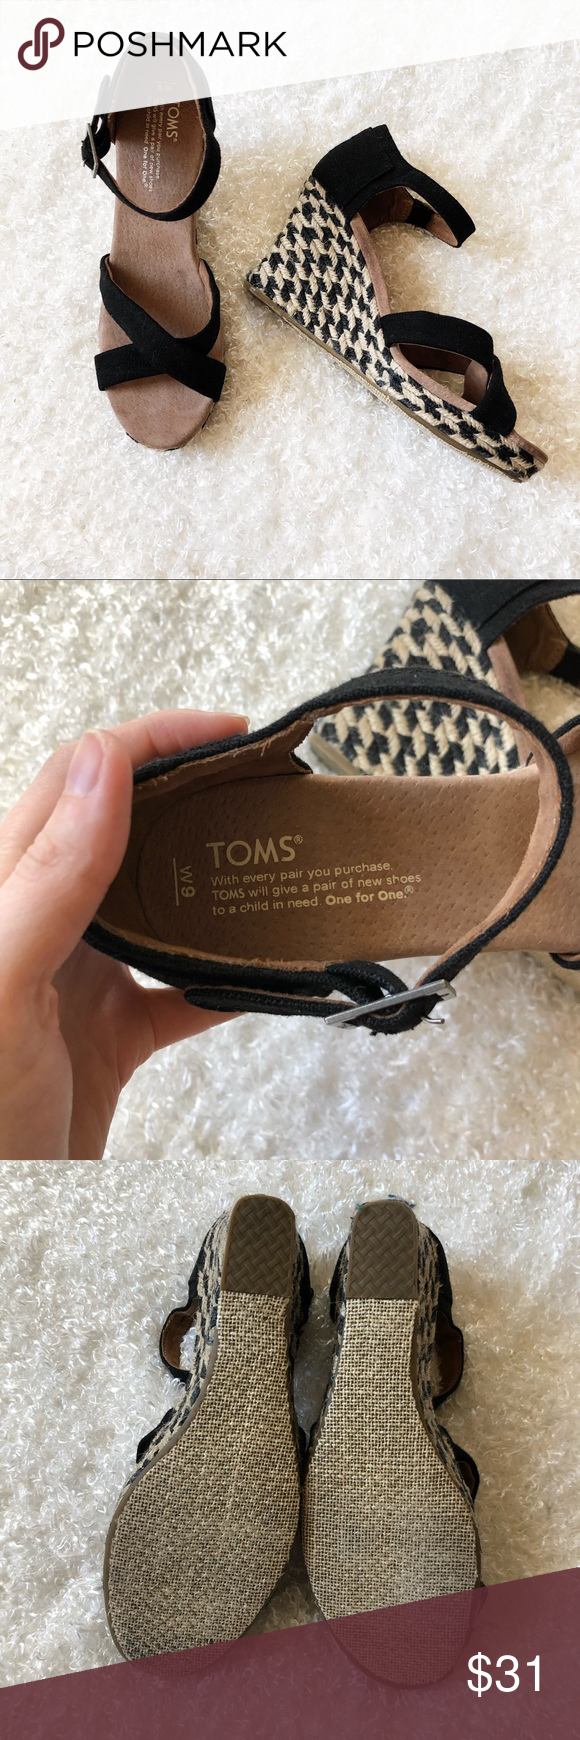 Toms Wedge Sandal Size 9 Toms Wedge Sandal. Wedge is approximately 4 inches. Size 9. Good condition, please see photos for any wear. Toms Shoes Wedges #tomwedges